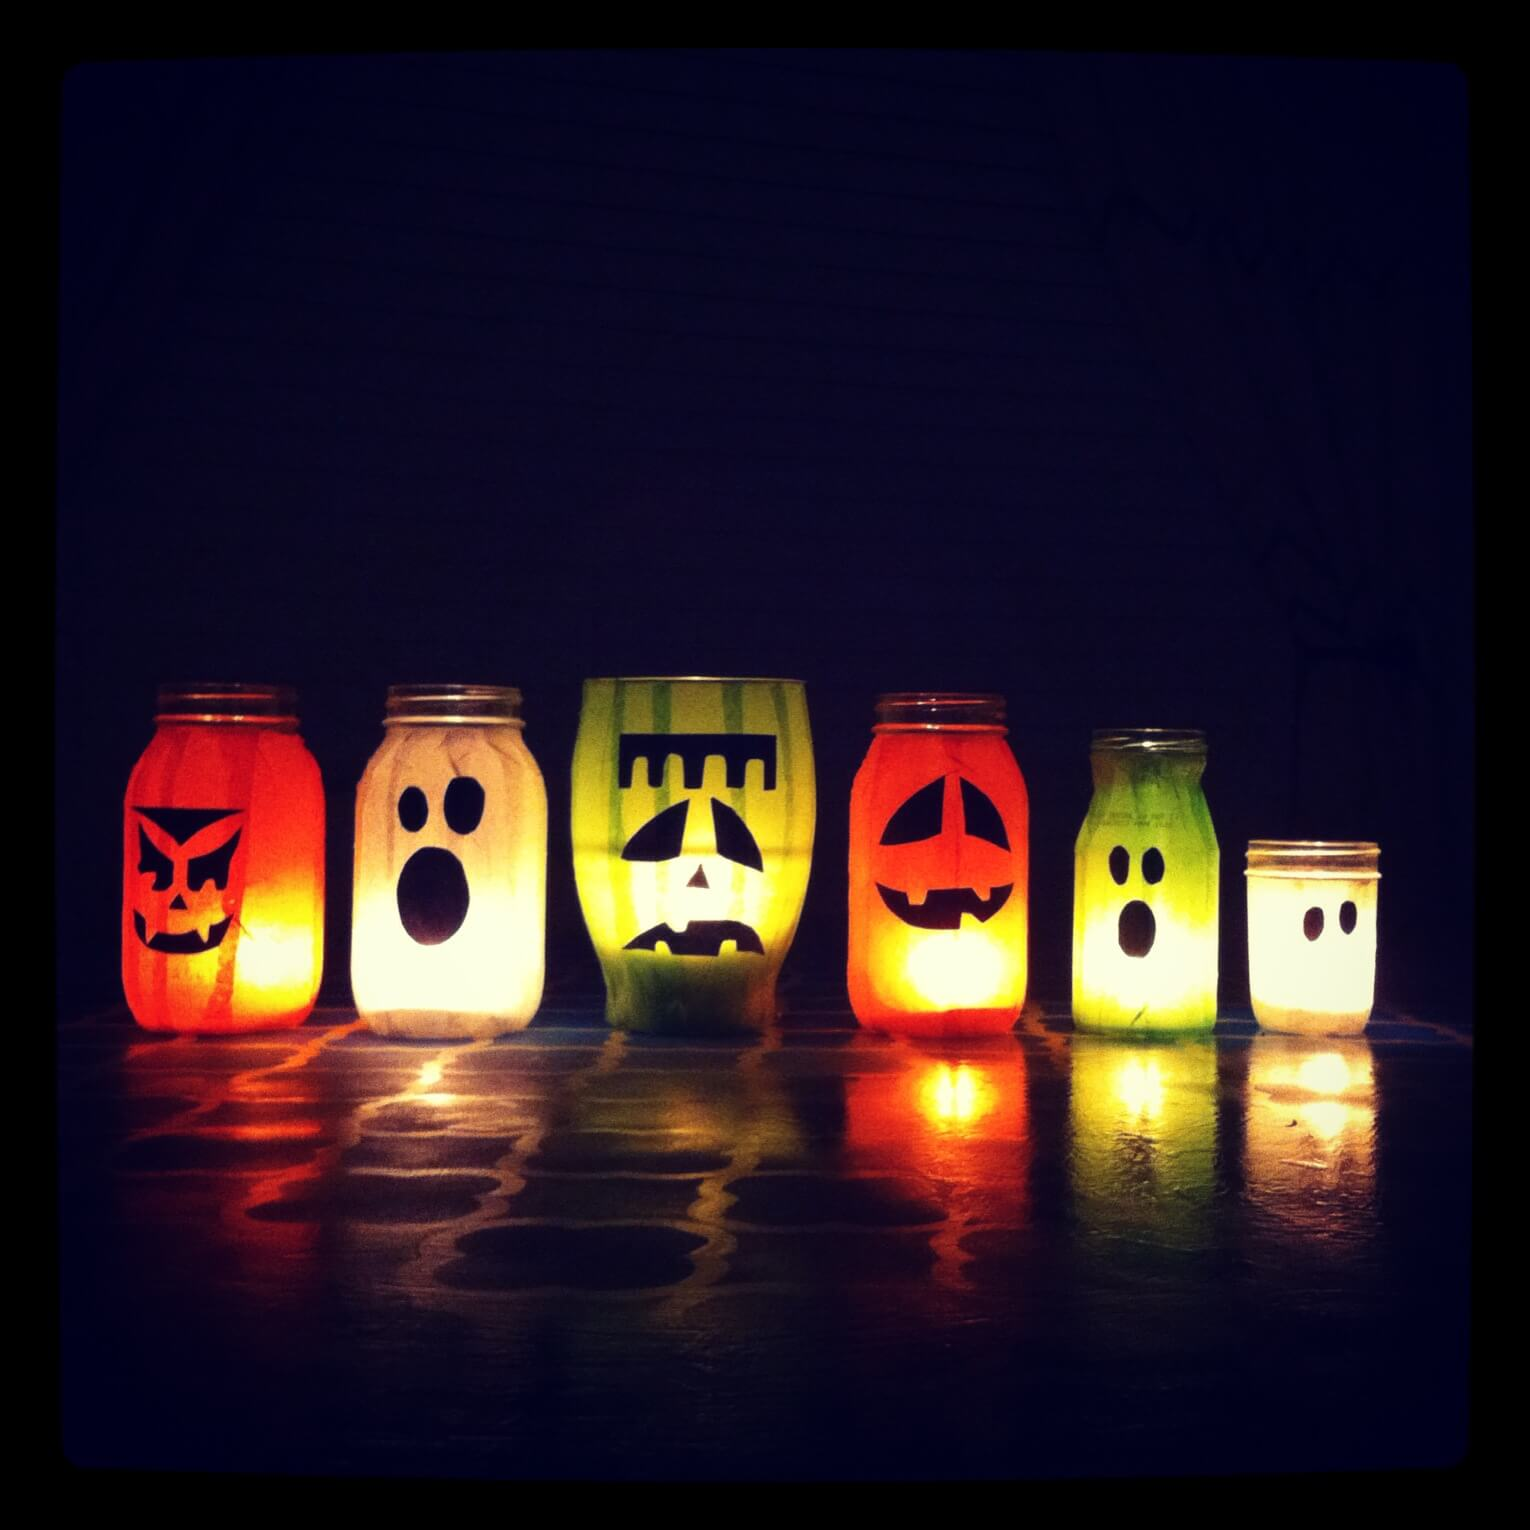 Ghost faced coloured lanterns for Halloween decoration